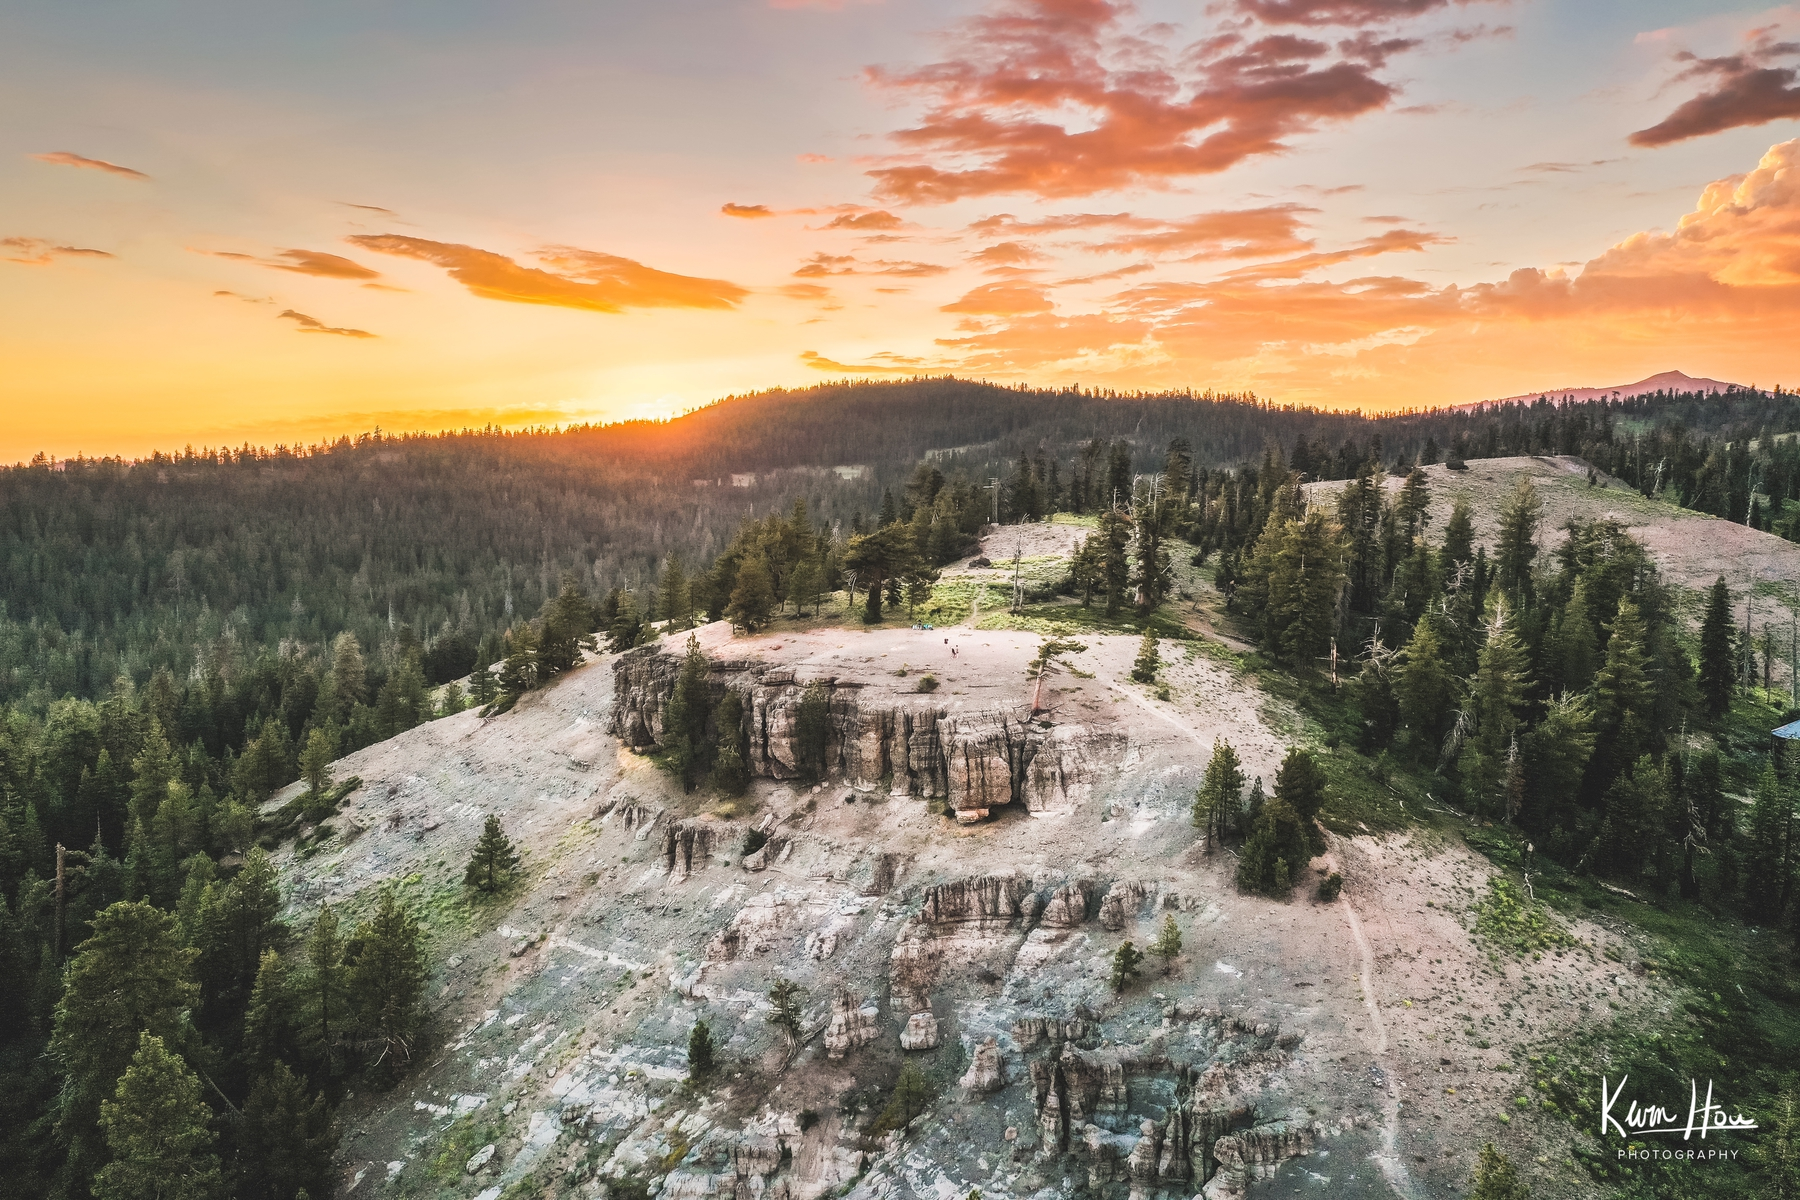 Bear Valley Bloods Ridge Sunset Drone Landscape Orange Panorama